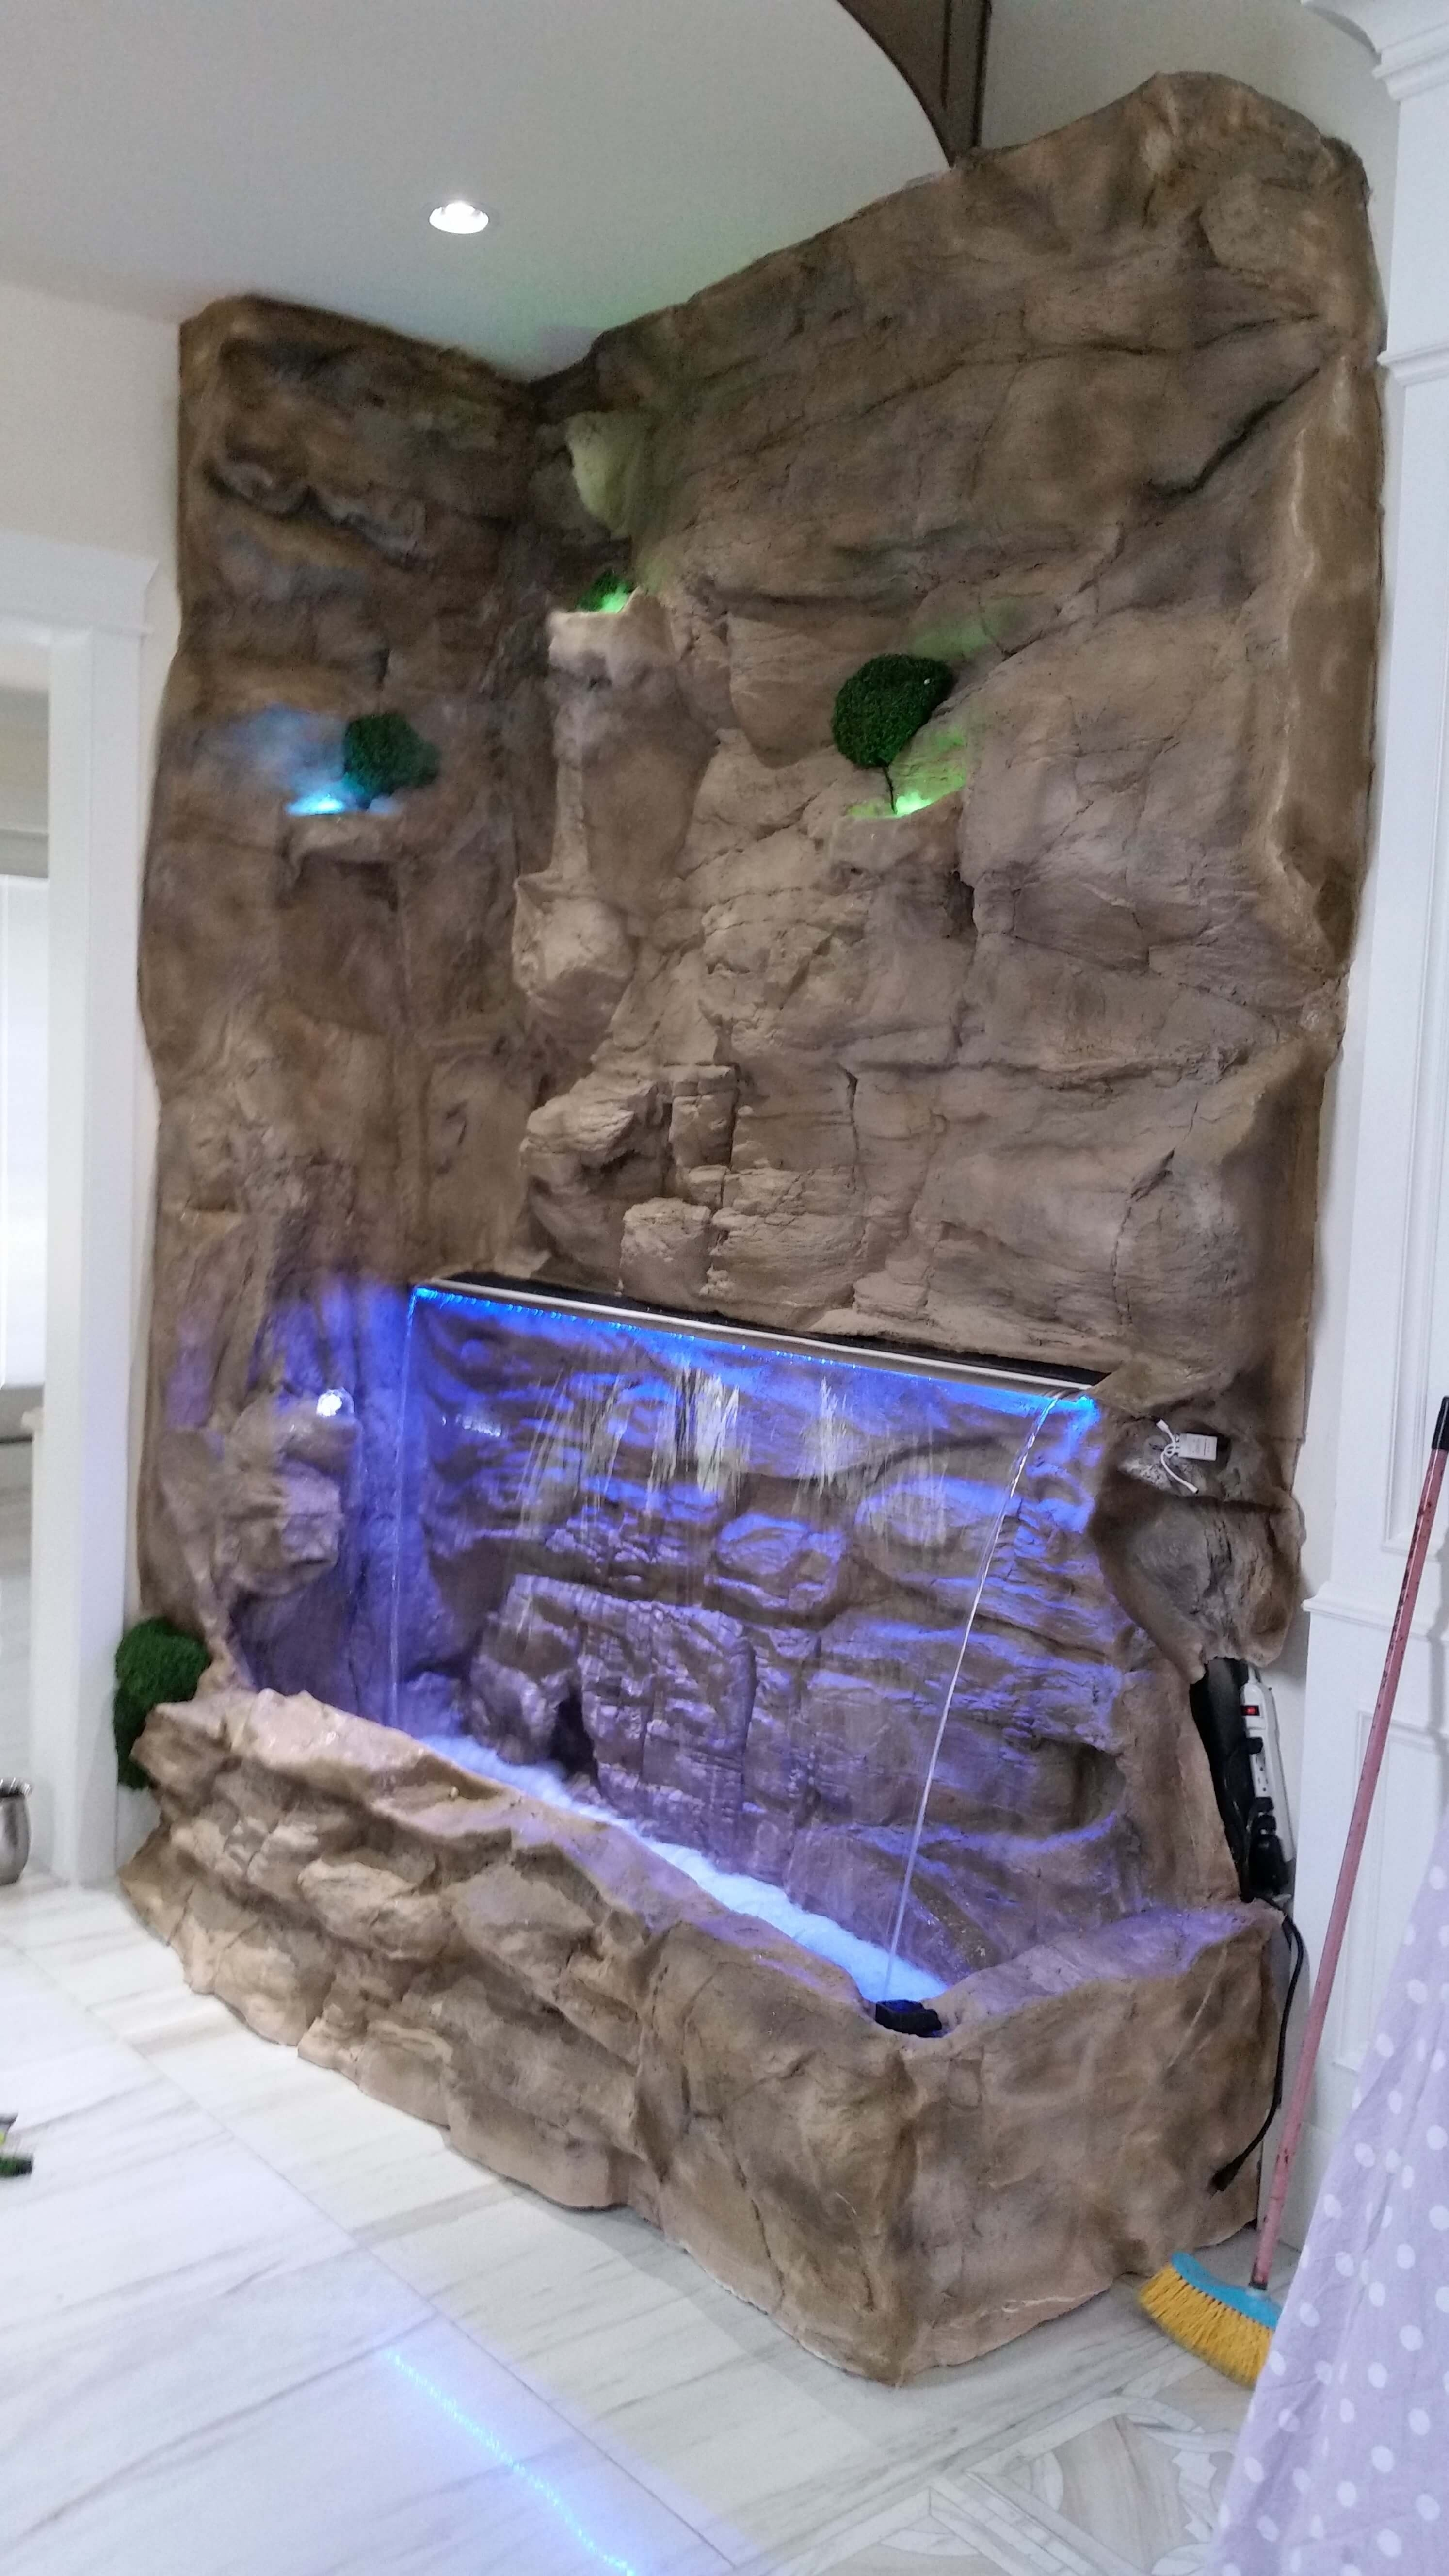 Outdoor And Patio: Rock Wall Fountains Indoor Ares With Lighting Within Outdoor Rock Wall Lighting (#9 of 15)